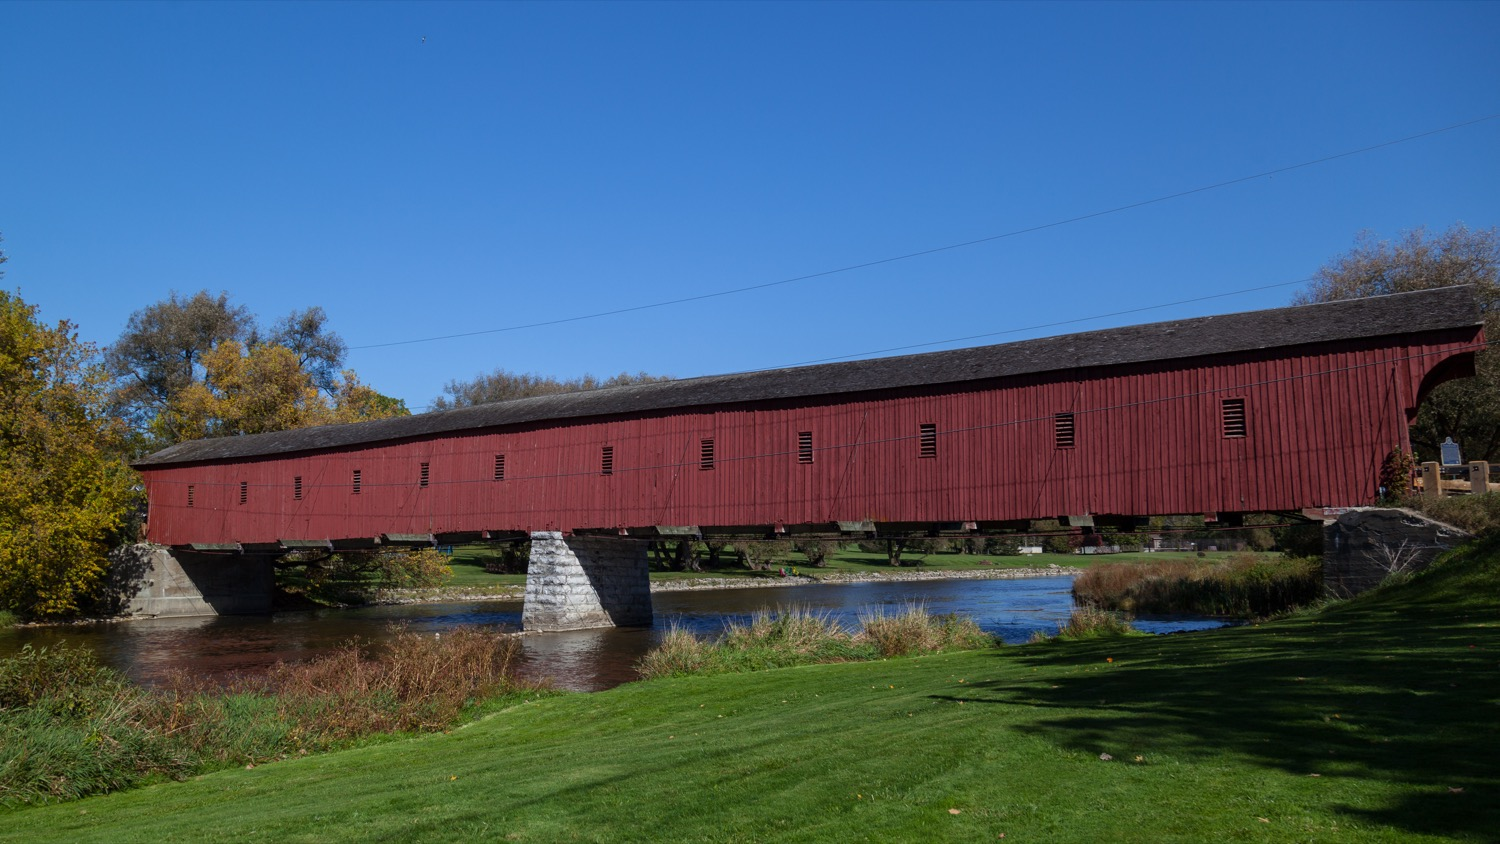 Red covered bridge over a river in a rural area.